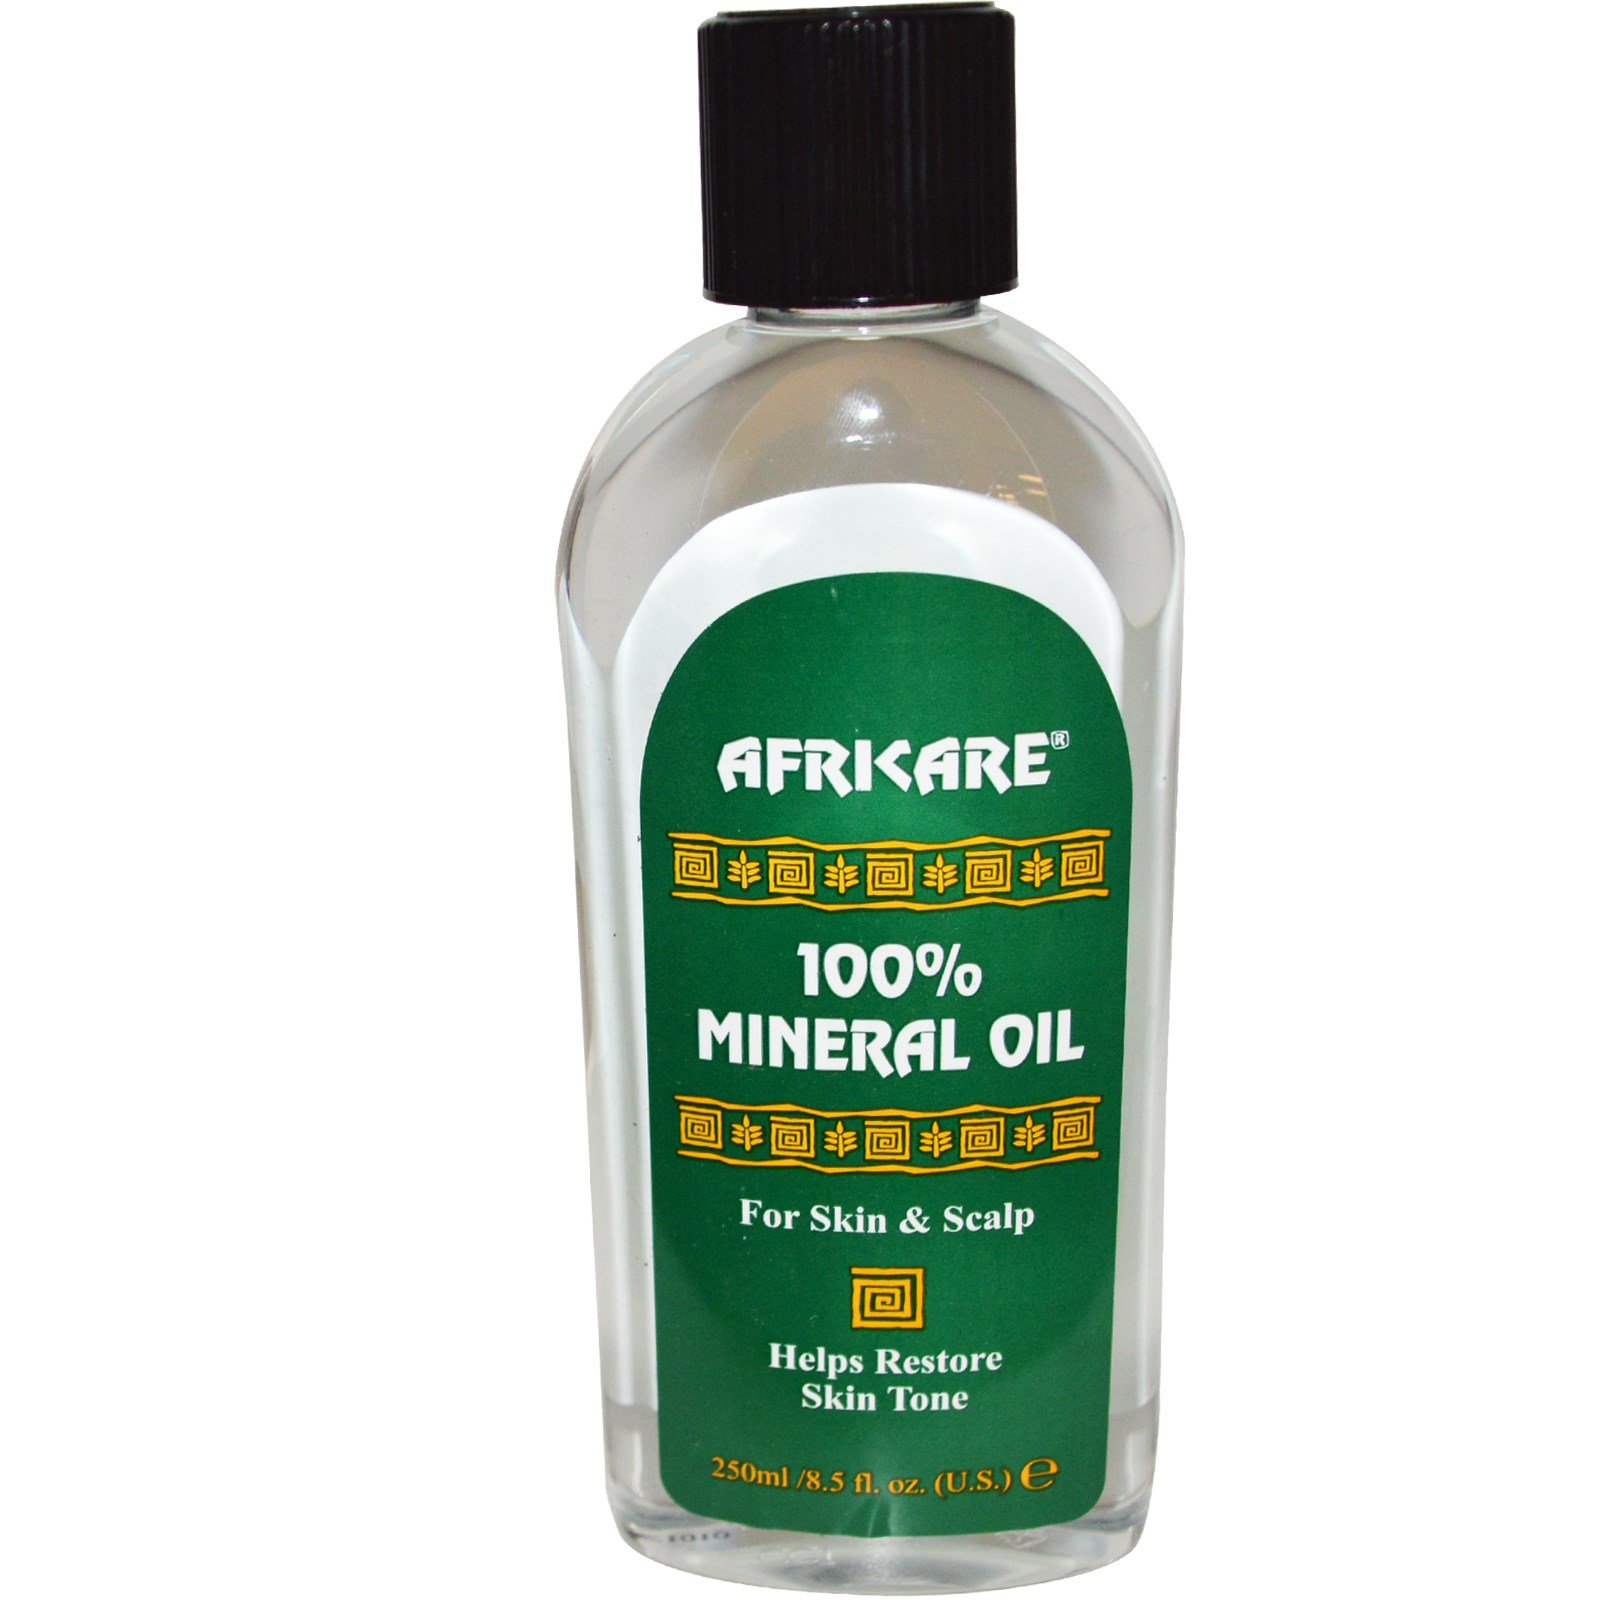 Mineral Oil Cococare Africare 100 Mineral Oil 8 5 Fl Oz 250 Ml Iherb